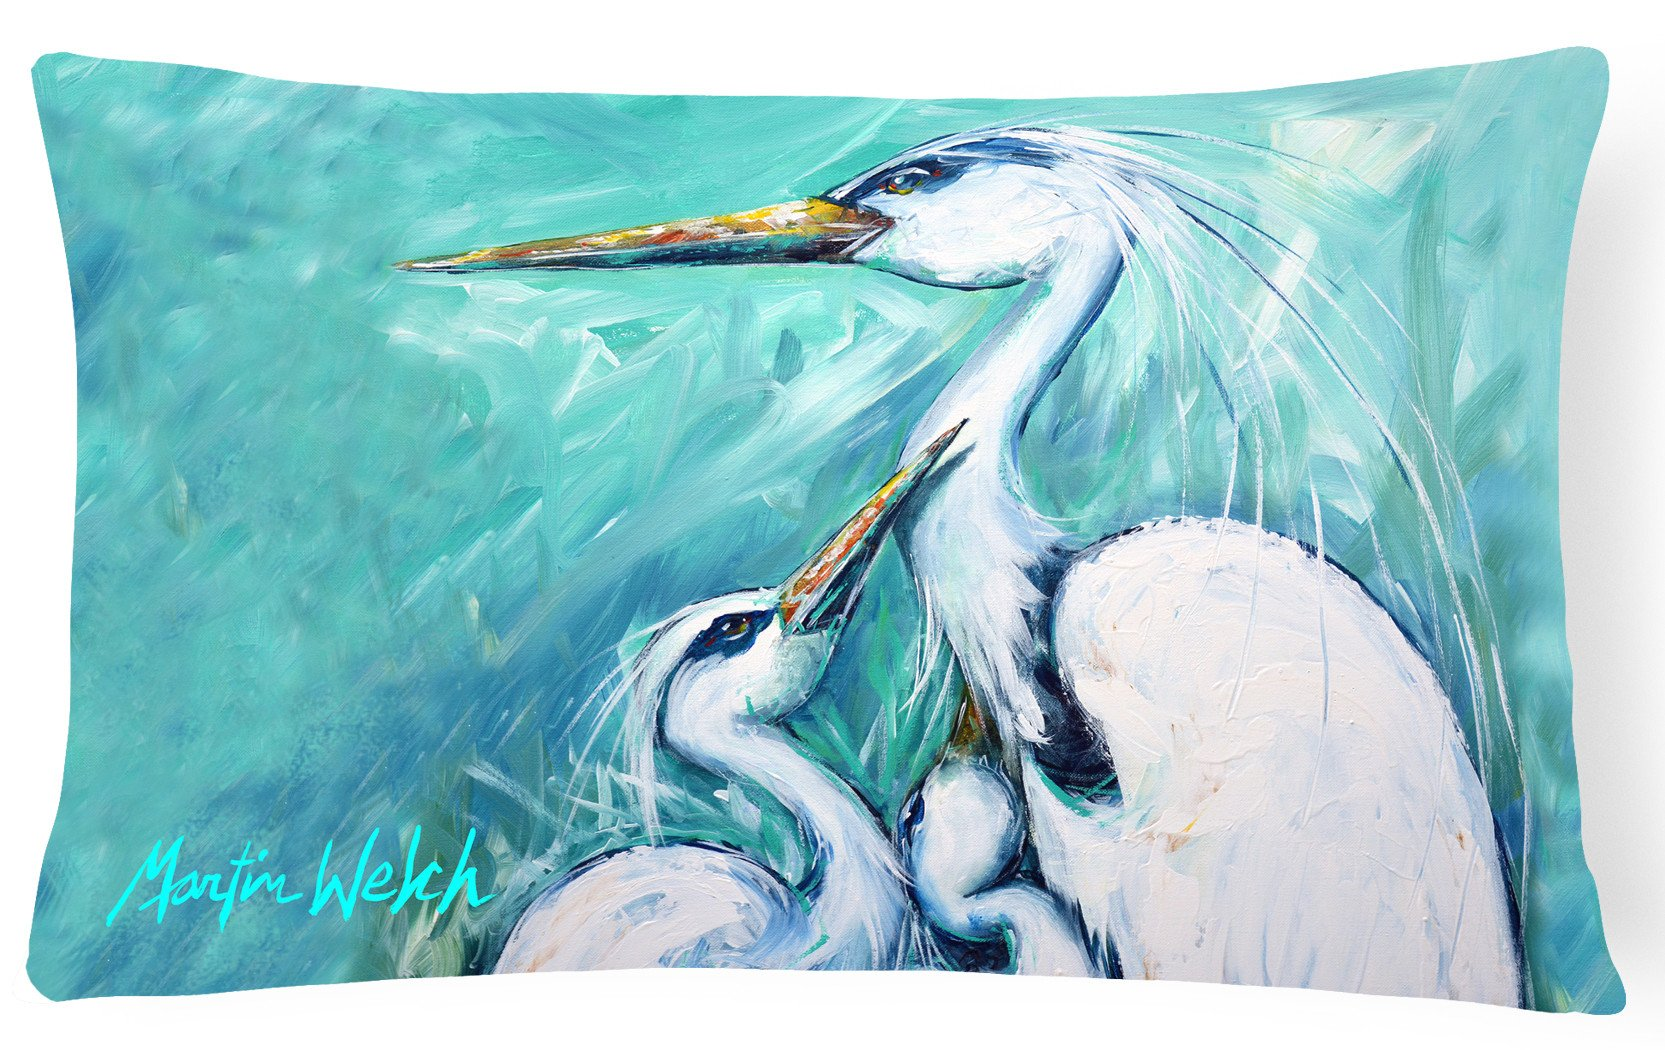 Mother's Love White Crane   Canvas Fabric Decorative Pillow MW1159PW1216 by Caroline's Treasures